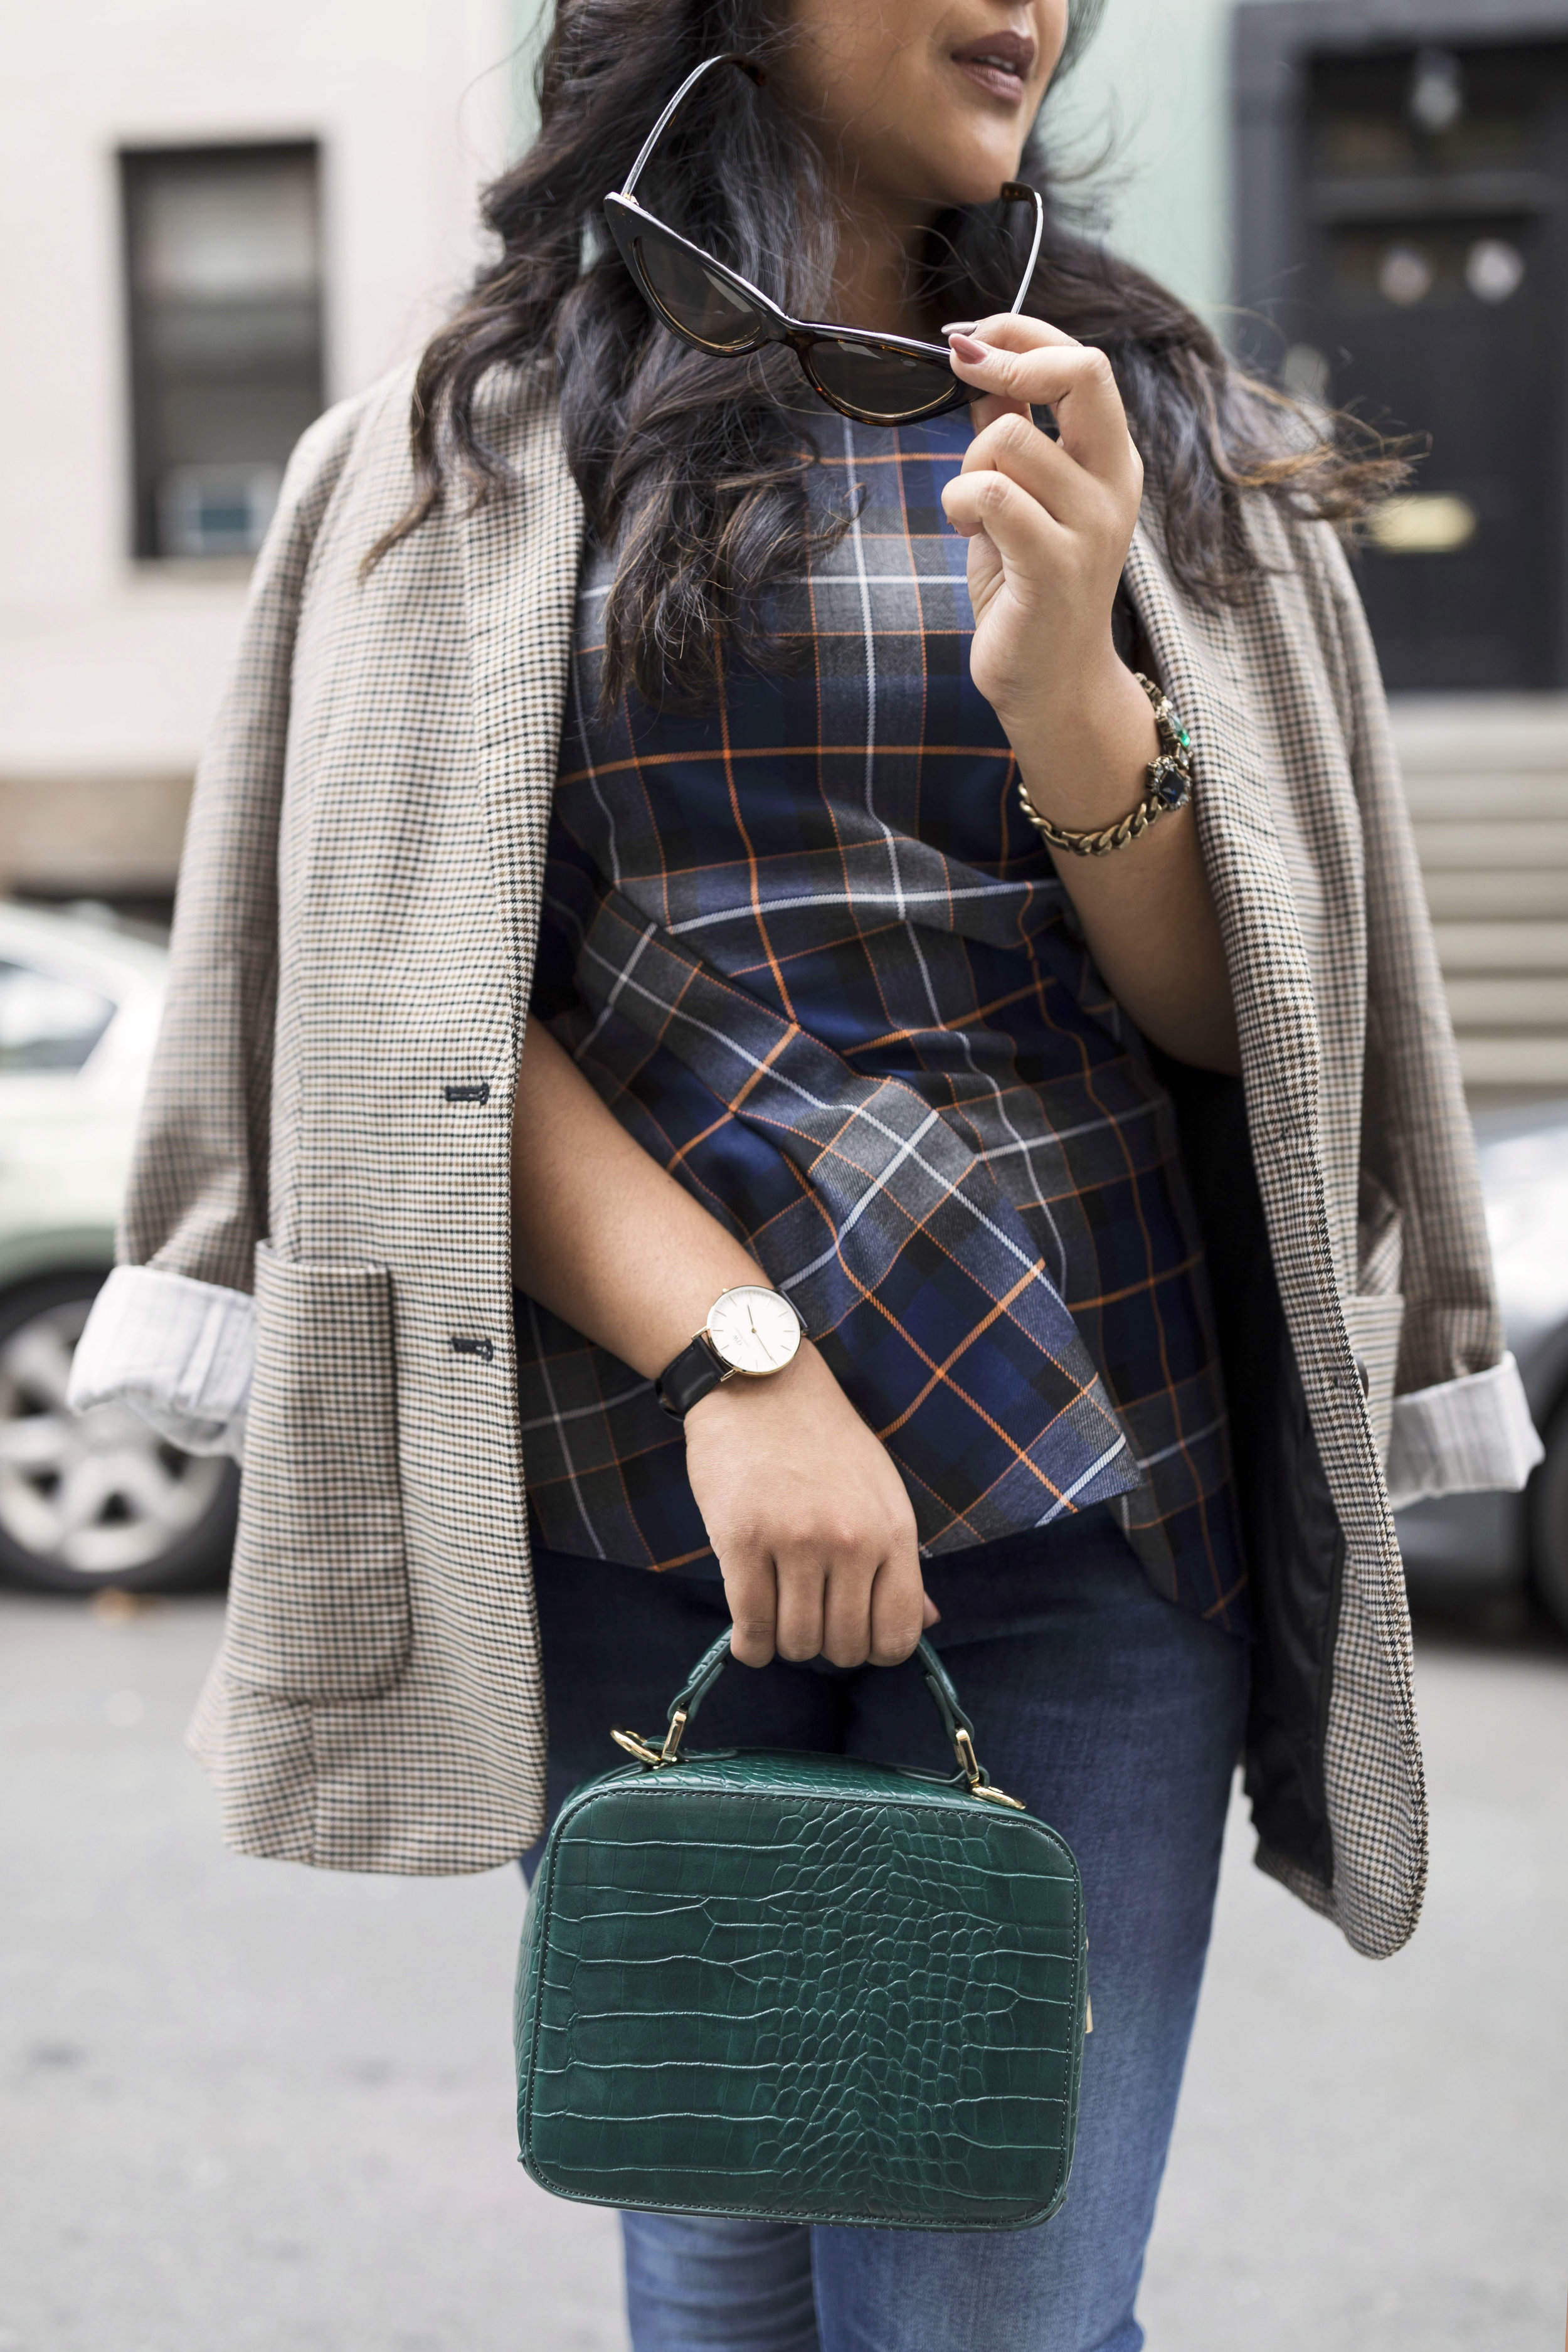 Krity S x Fall Trends x Plaid and Denim8.jpg